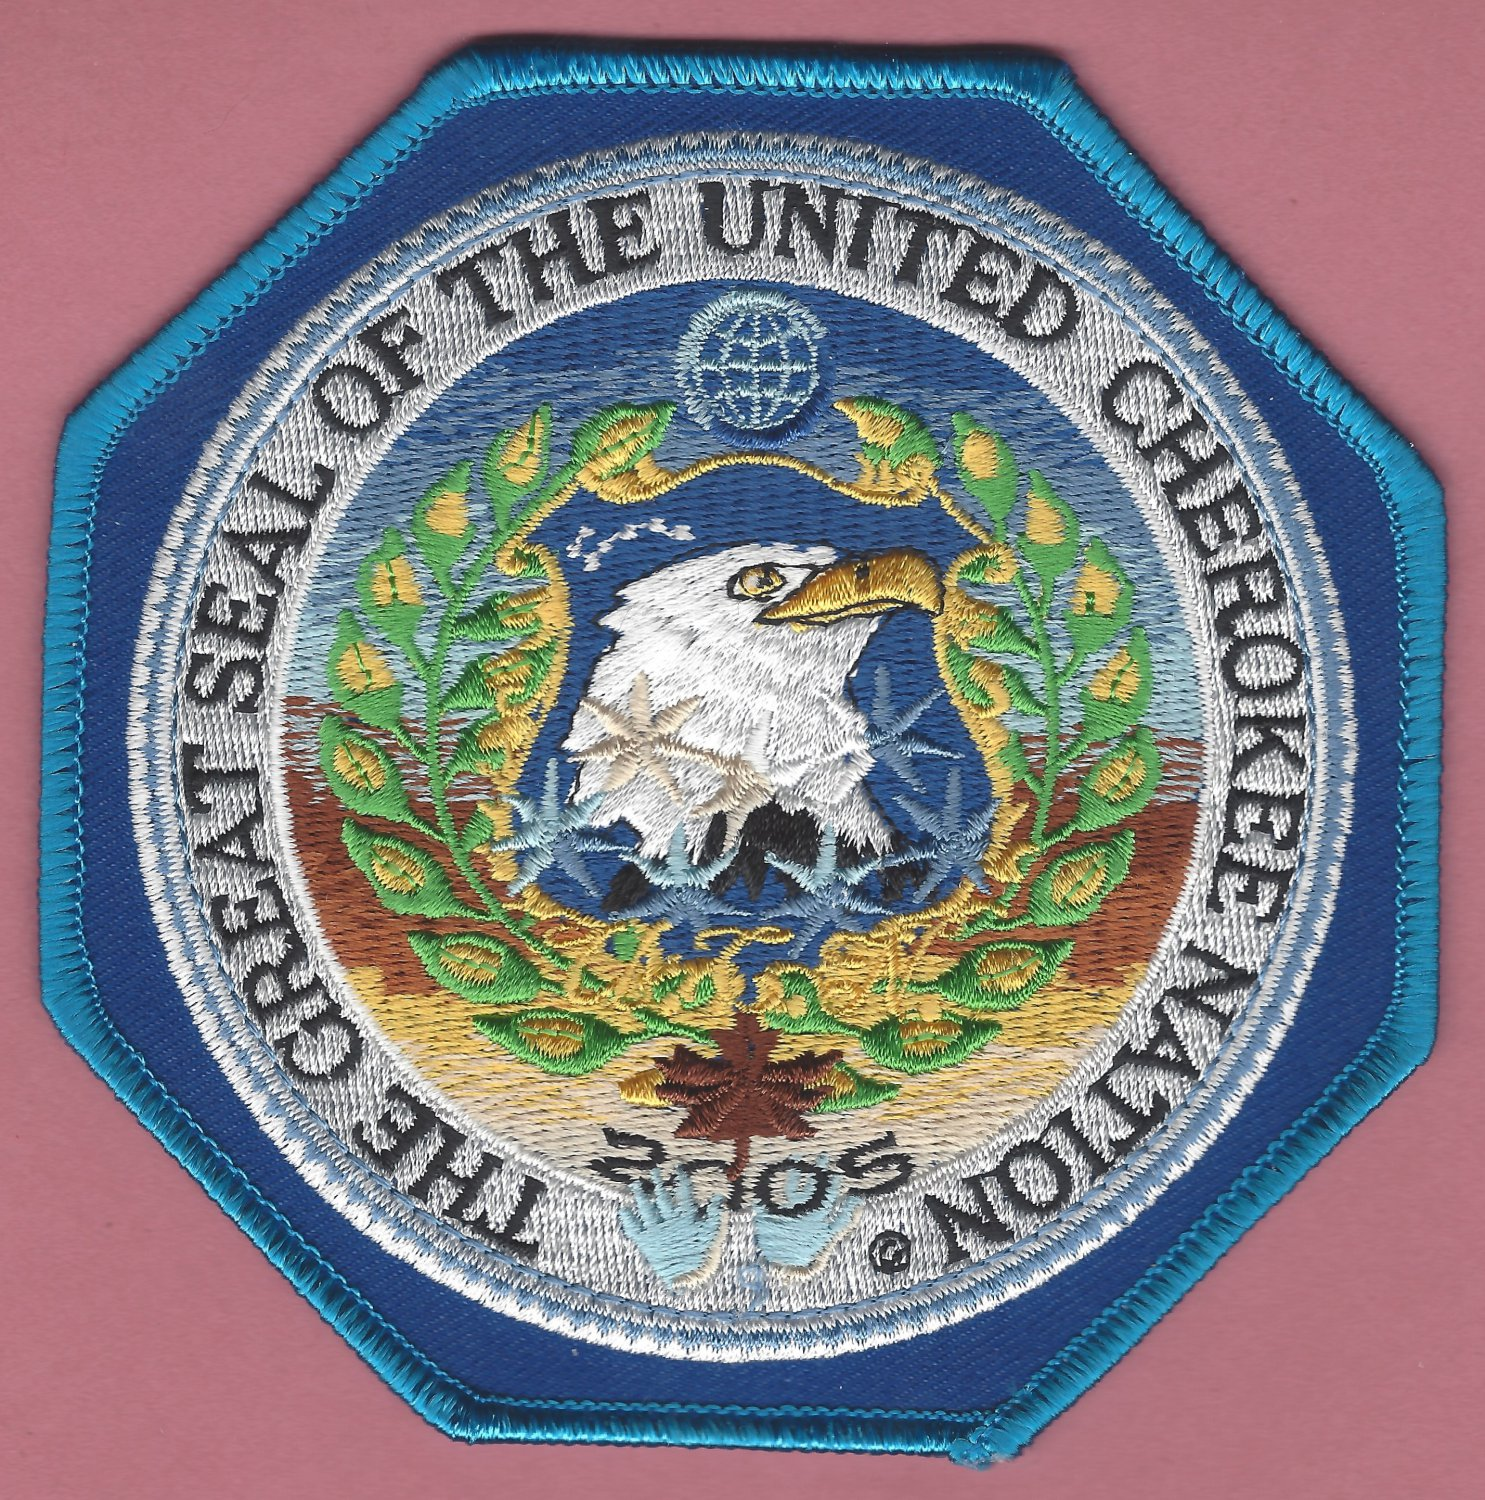 The Great Seal of the United Cherokee Nation Tribal Patch